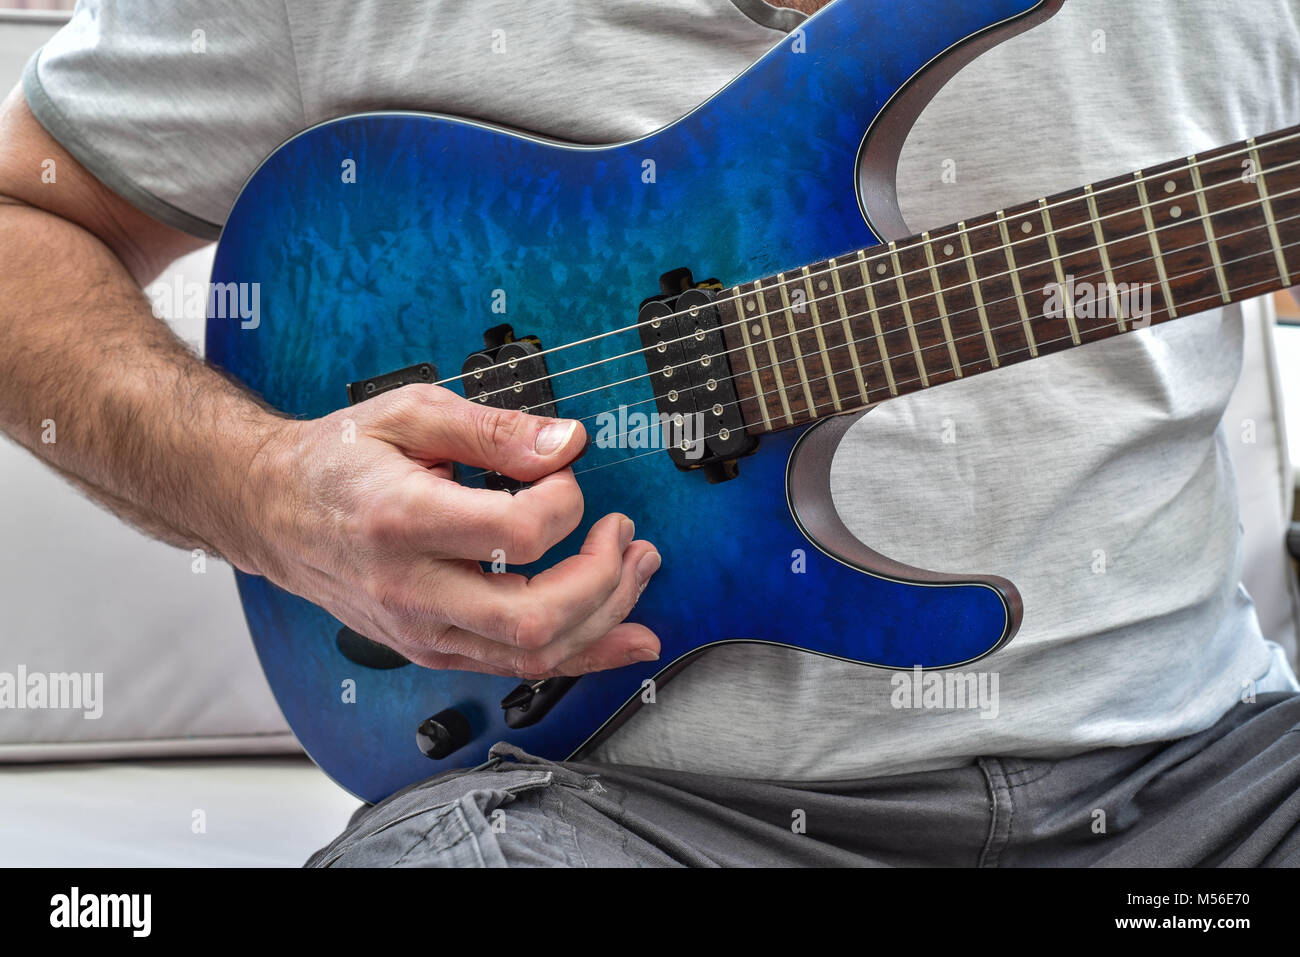 Playing the guitar - Stock Image